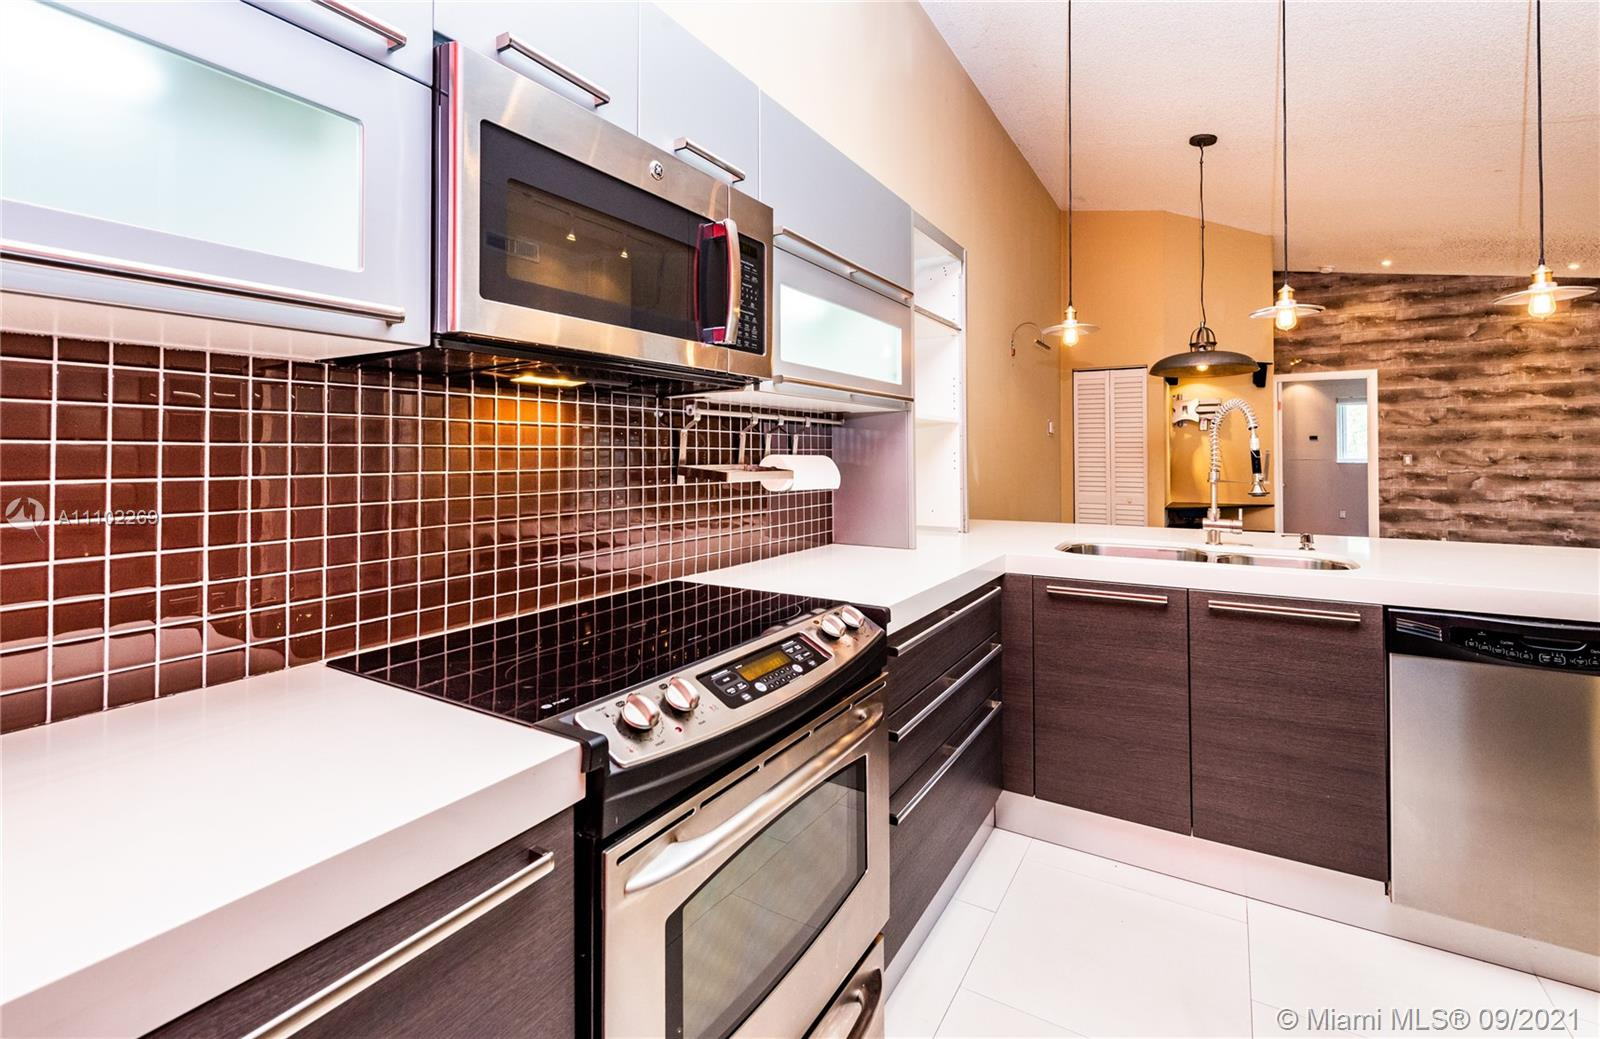 Completely remodeled unit in the heart of Doral, near restaurants, shops, A+ schools, Downtown Doral, CityPlace Doral, Turnpike, Palmetto, and Dolphin expressways. The unit features a Modern looking Kitchen with Stainless Steel Appliances, Quartz Countertops, Italian cabinets, Italian porcelain floors, and wine coolers. It has an enclosed balcony with a washer and dryer. Doral Place is located inside Doral Park which features resort-style amenities such as Tennis courts, Basketball courts, Beach Volleyball courts, Olympic Pools, Gym, Restaurant, Playgrounds, Sauna, and More. Membership to Doral Park Country Club is included. Pets are welcome. Showings will start on Monday the 27th of this month.